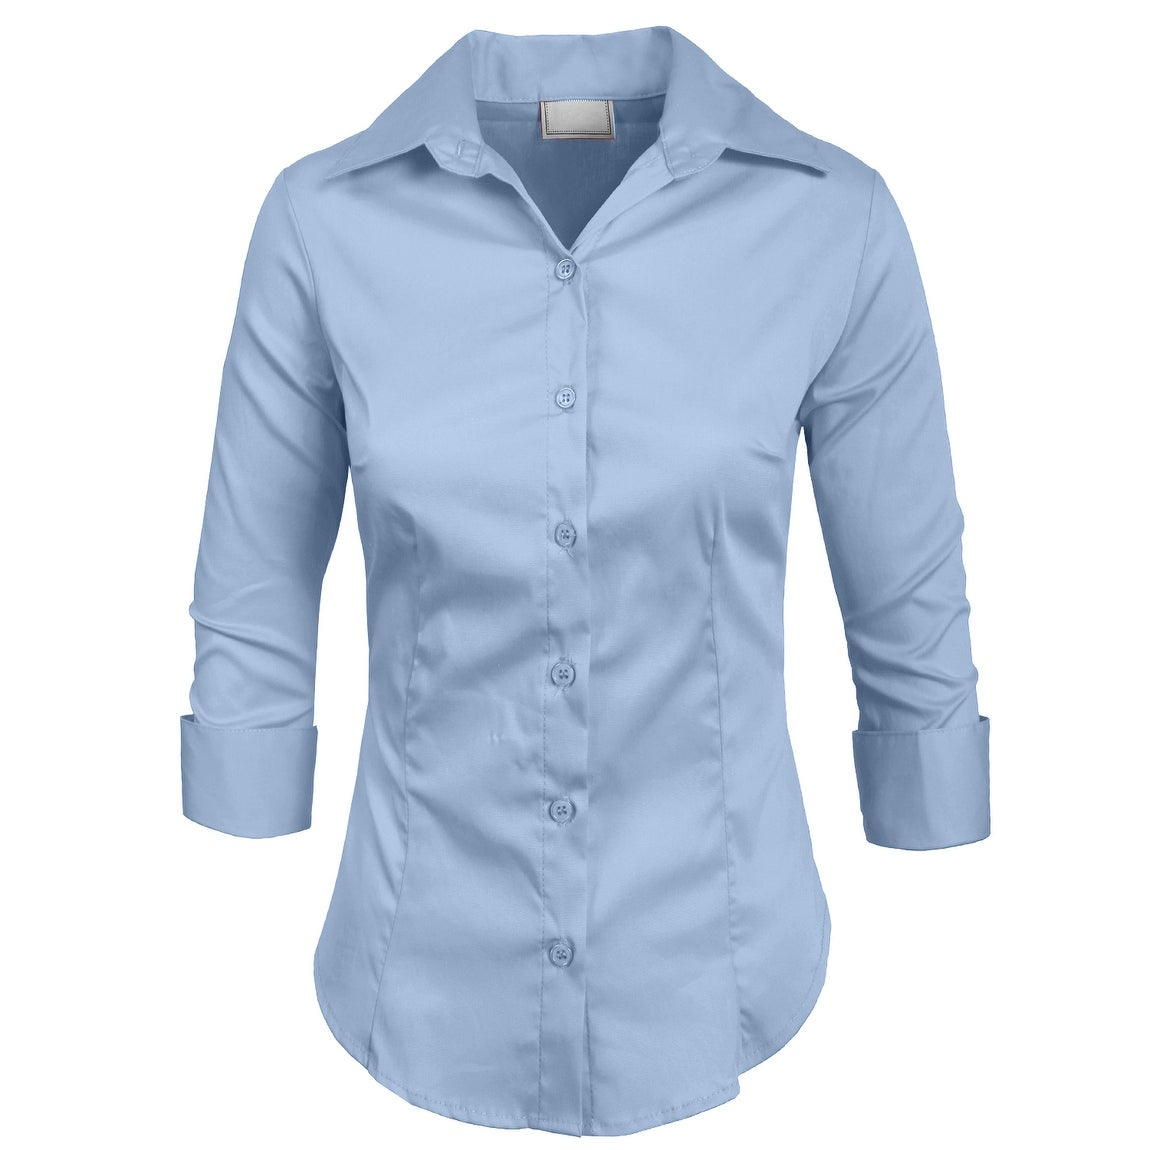 5a637df285f31 Buy 3/4 Sleeve Shirts Online at Overstock | Our Best Tops Deals